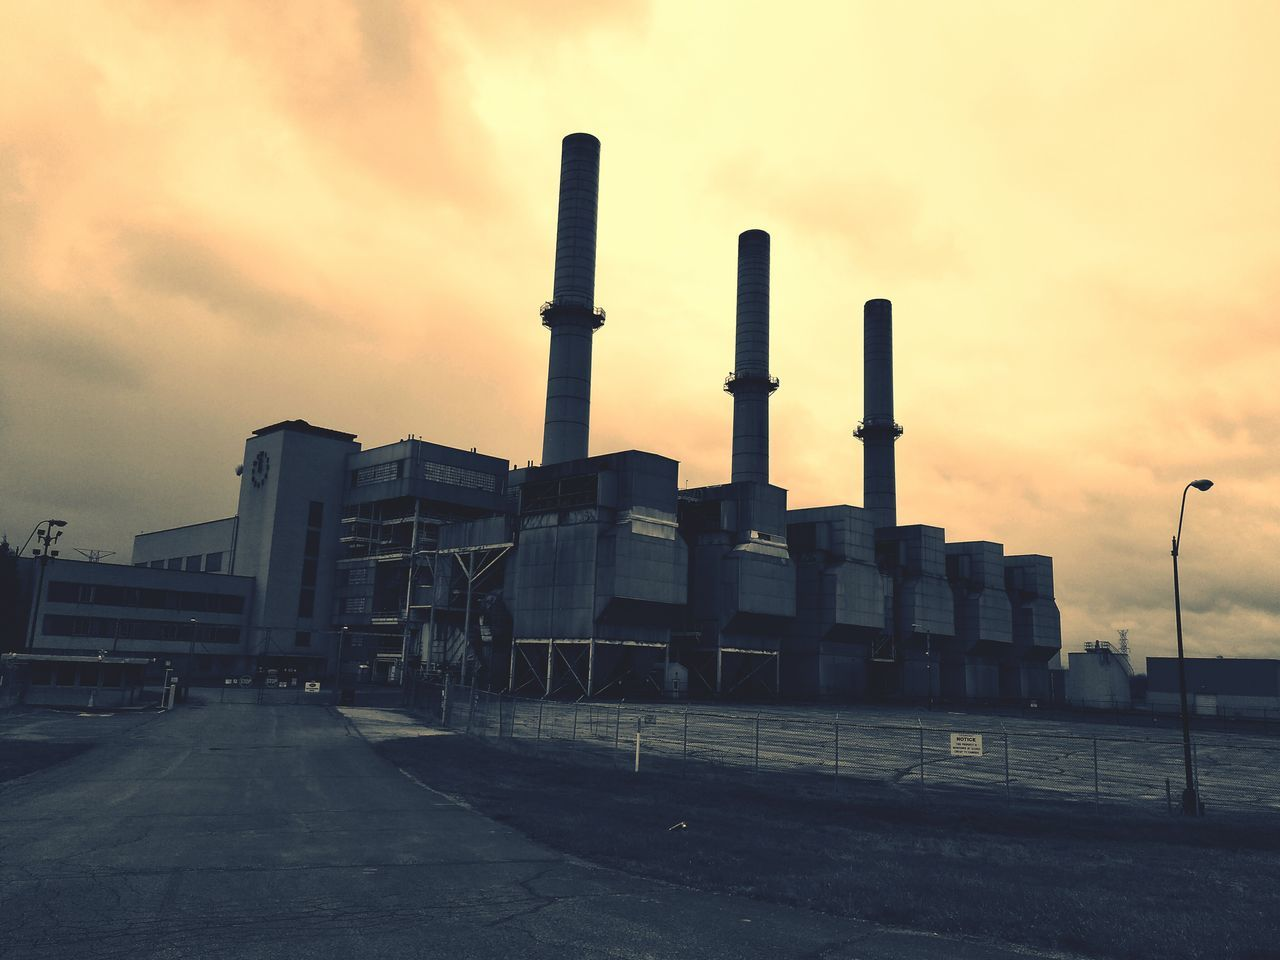 industry, sky, built structure, factory, architecture, smoke stack, building exterior, no people, outdoors, cloud - sky, sunset, day